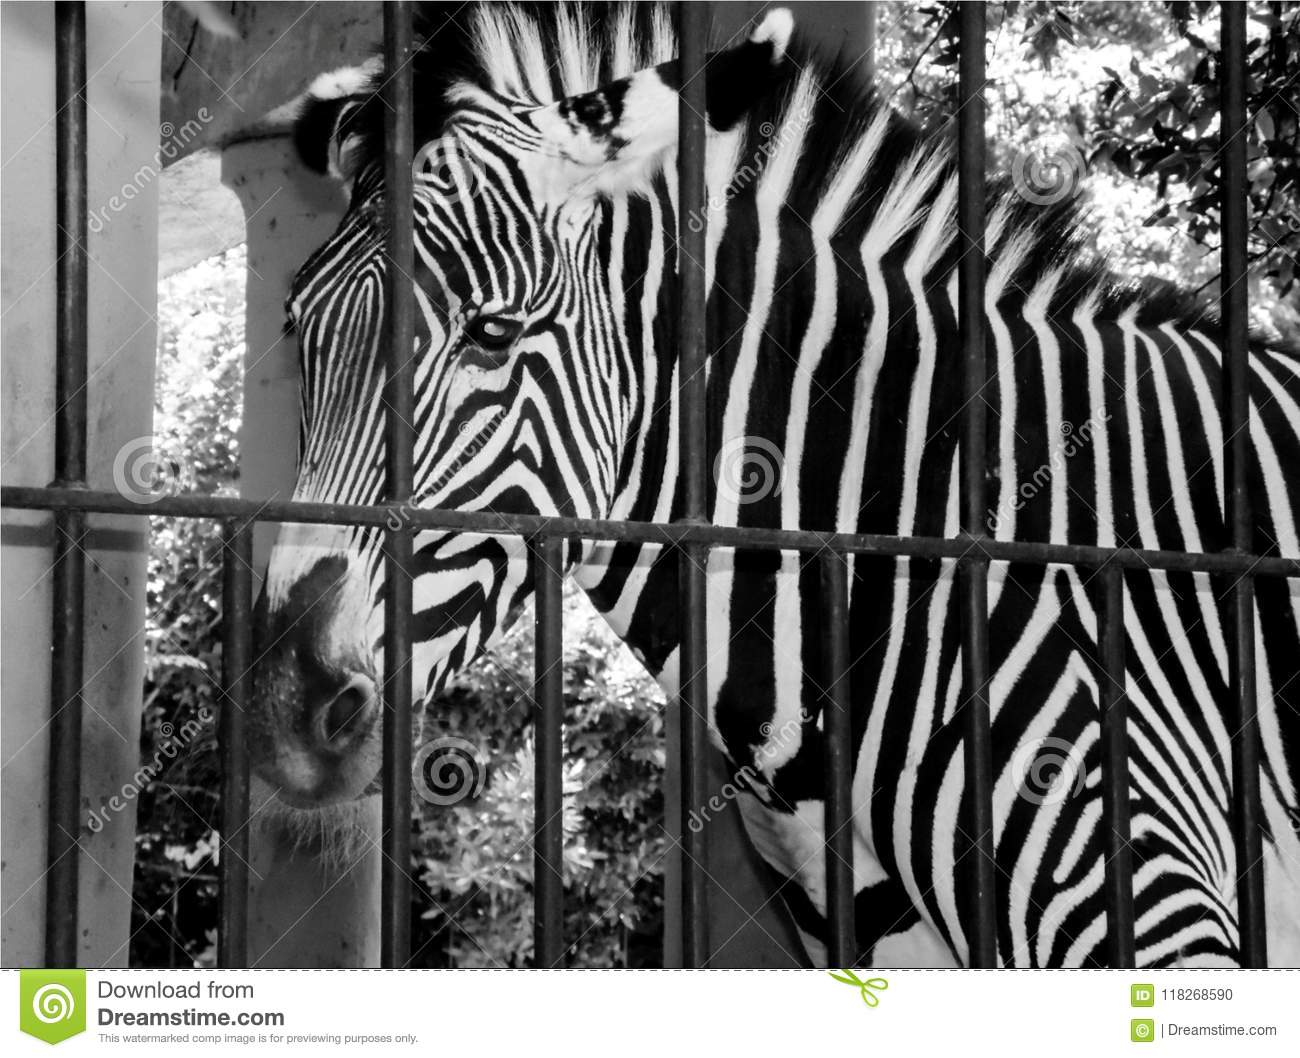 Zebra at the zoo in black and white concept of sad life of an animal in a cage background with portrait of animal closeup detail